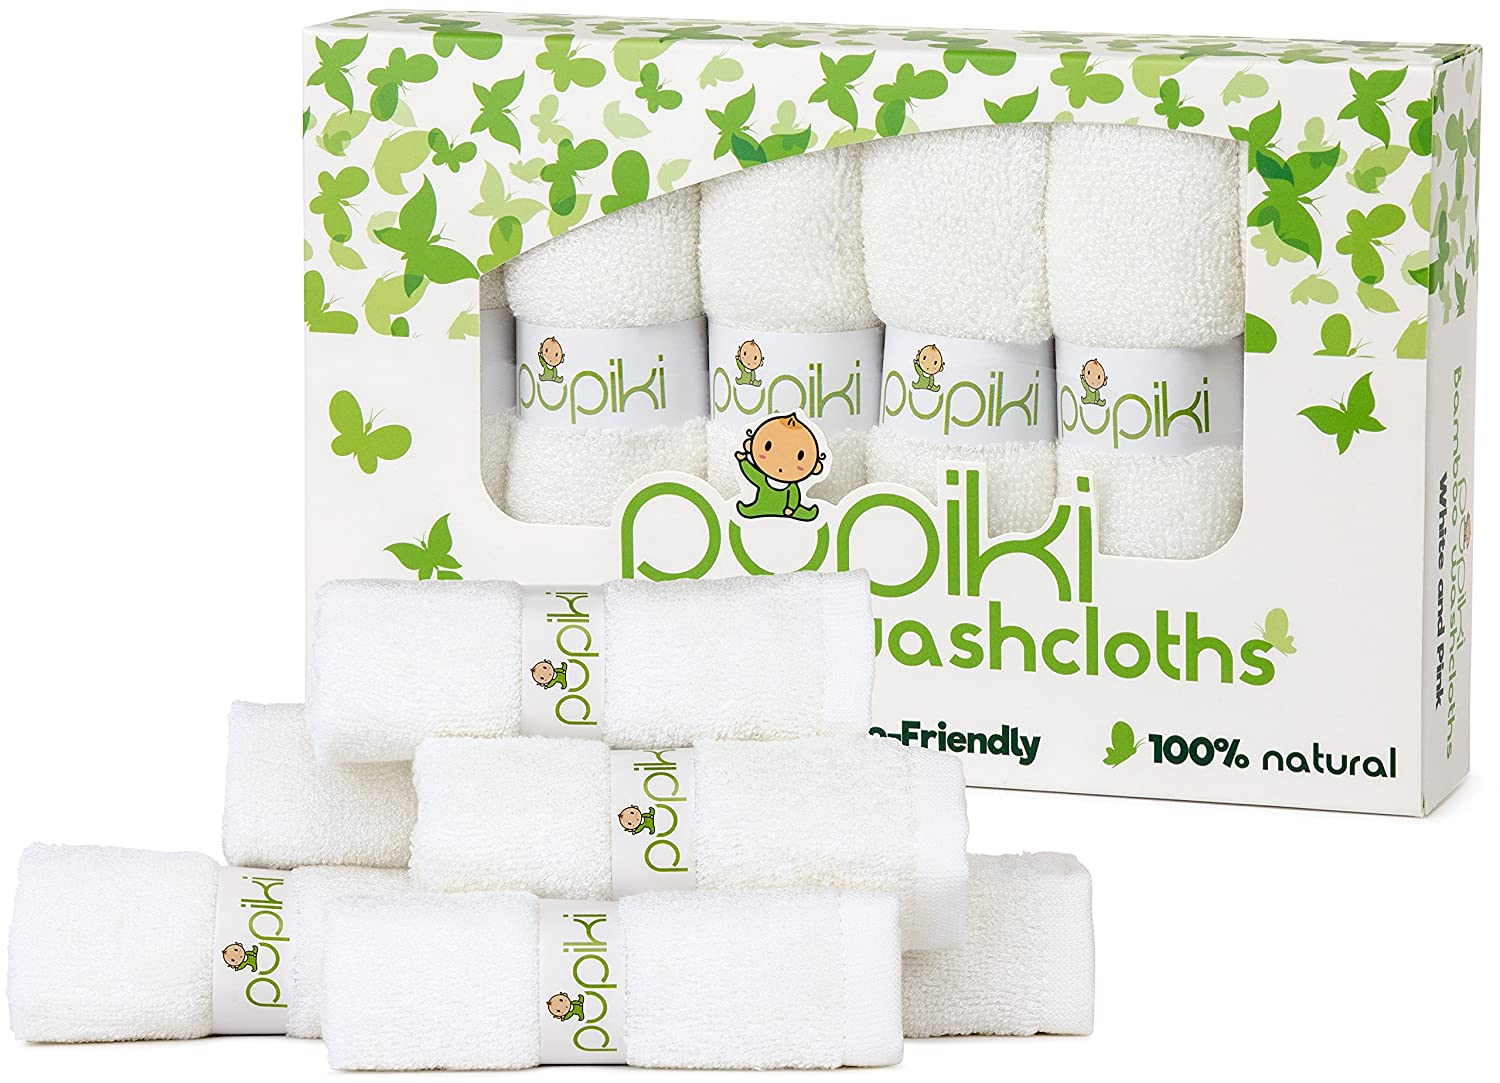 Pupiki Premium Baby Washcloths 6 Ultra-Soft Hypoallergenic 100% Organic Bamboo from Rayon Fiber Baby Bath Washcloth Face Towels Absorbent 10X10 Newborn Towel Pack Unisex White